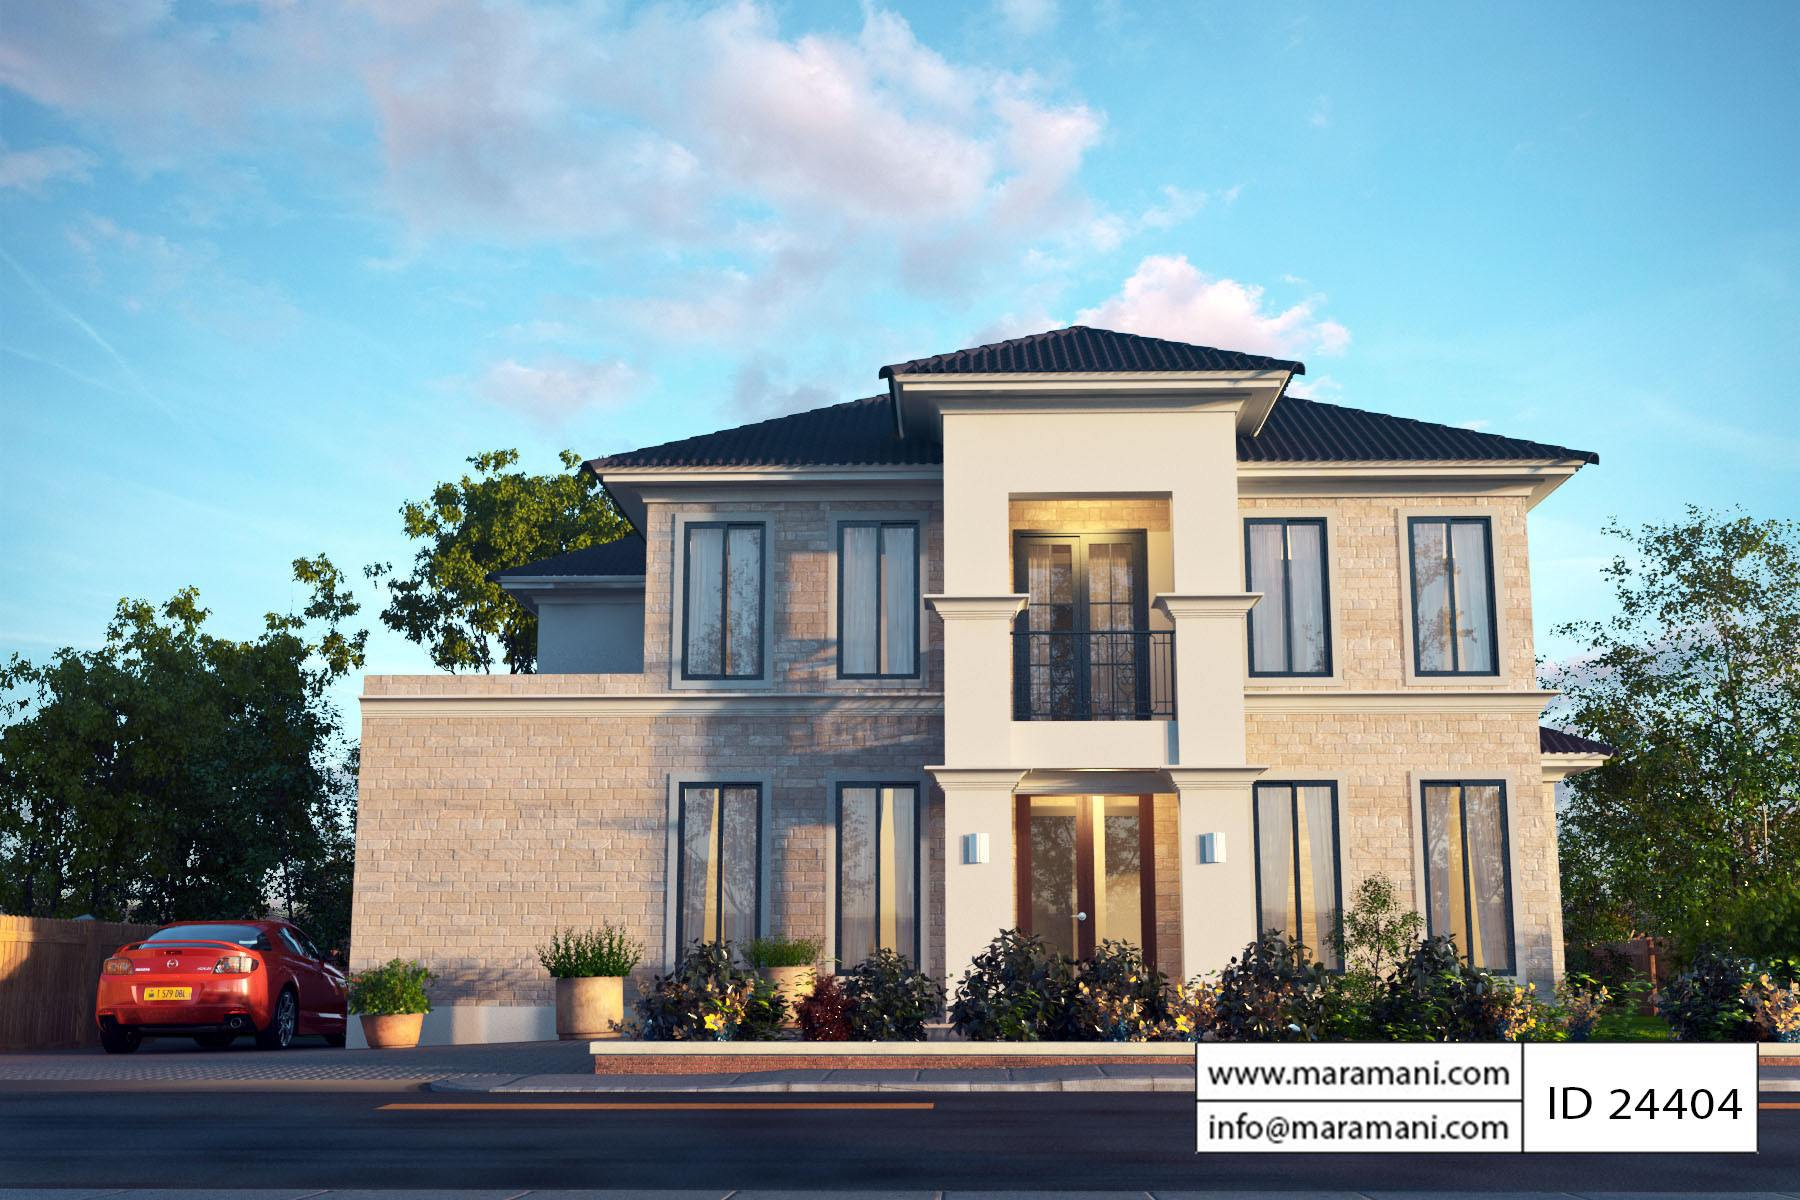 four bedroom modern house plan house plans maramani com 16216 | 1 72832f81 1d2a 4d8f b8b9 1ddde19e9d4a v 1509443038